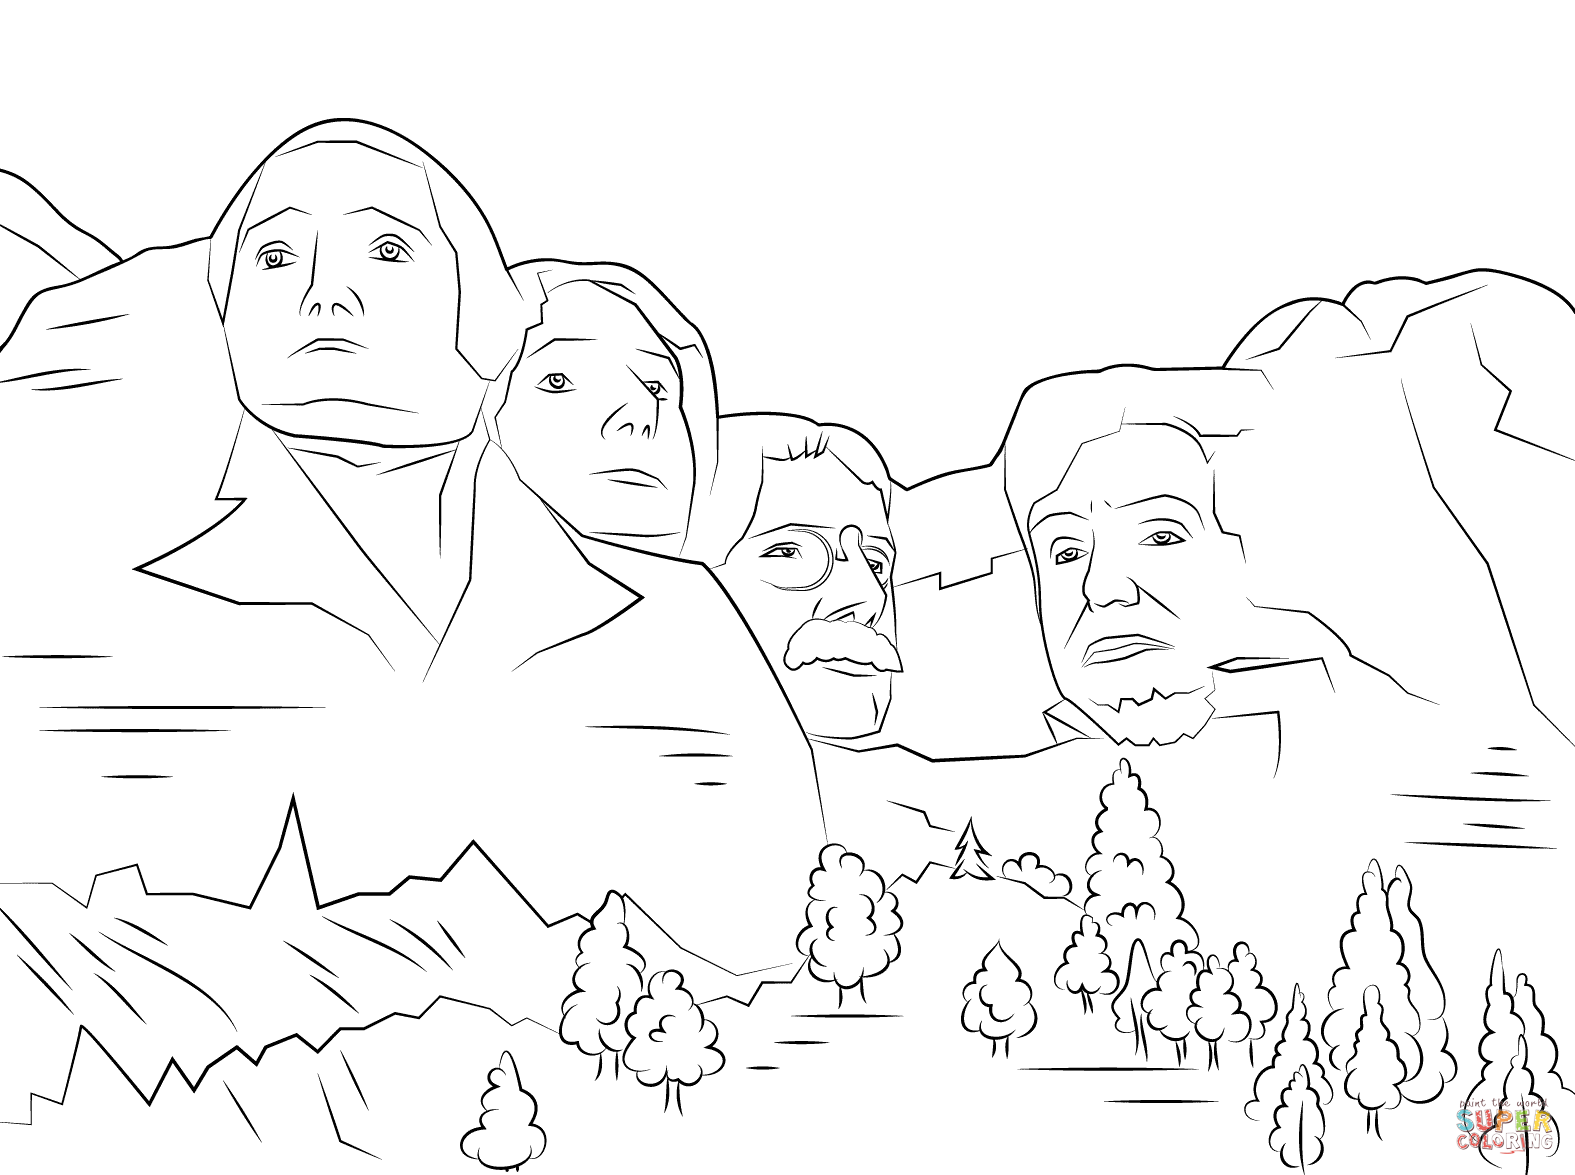 Mount rushmore clipart easy. Coloring page free printable